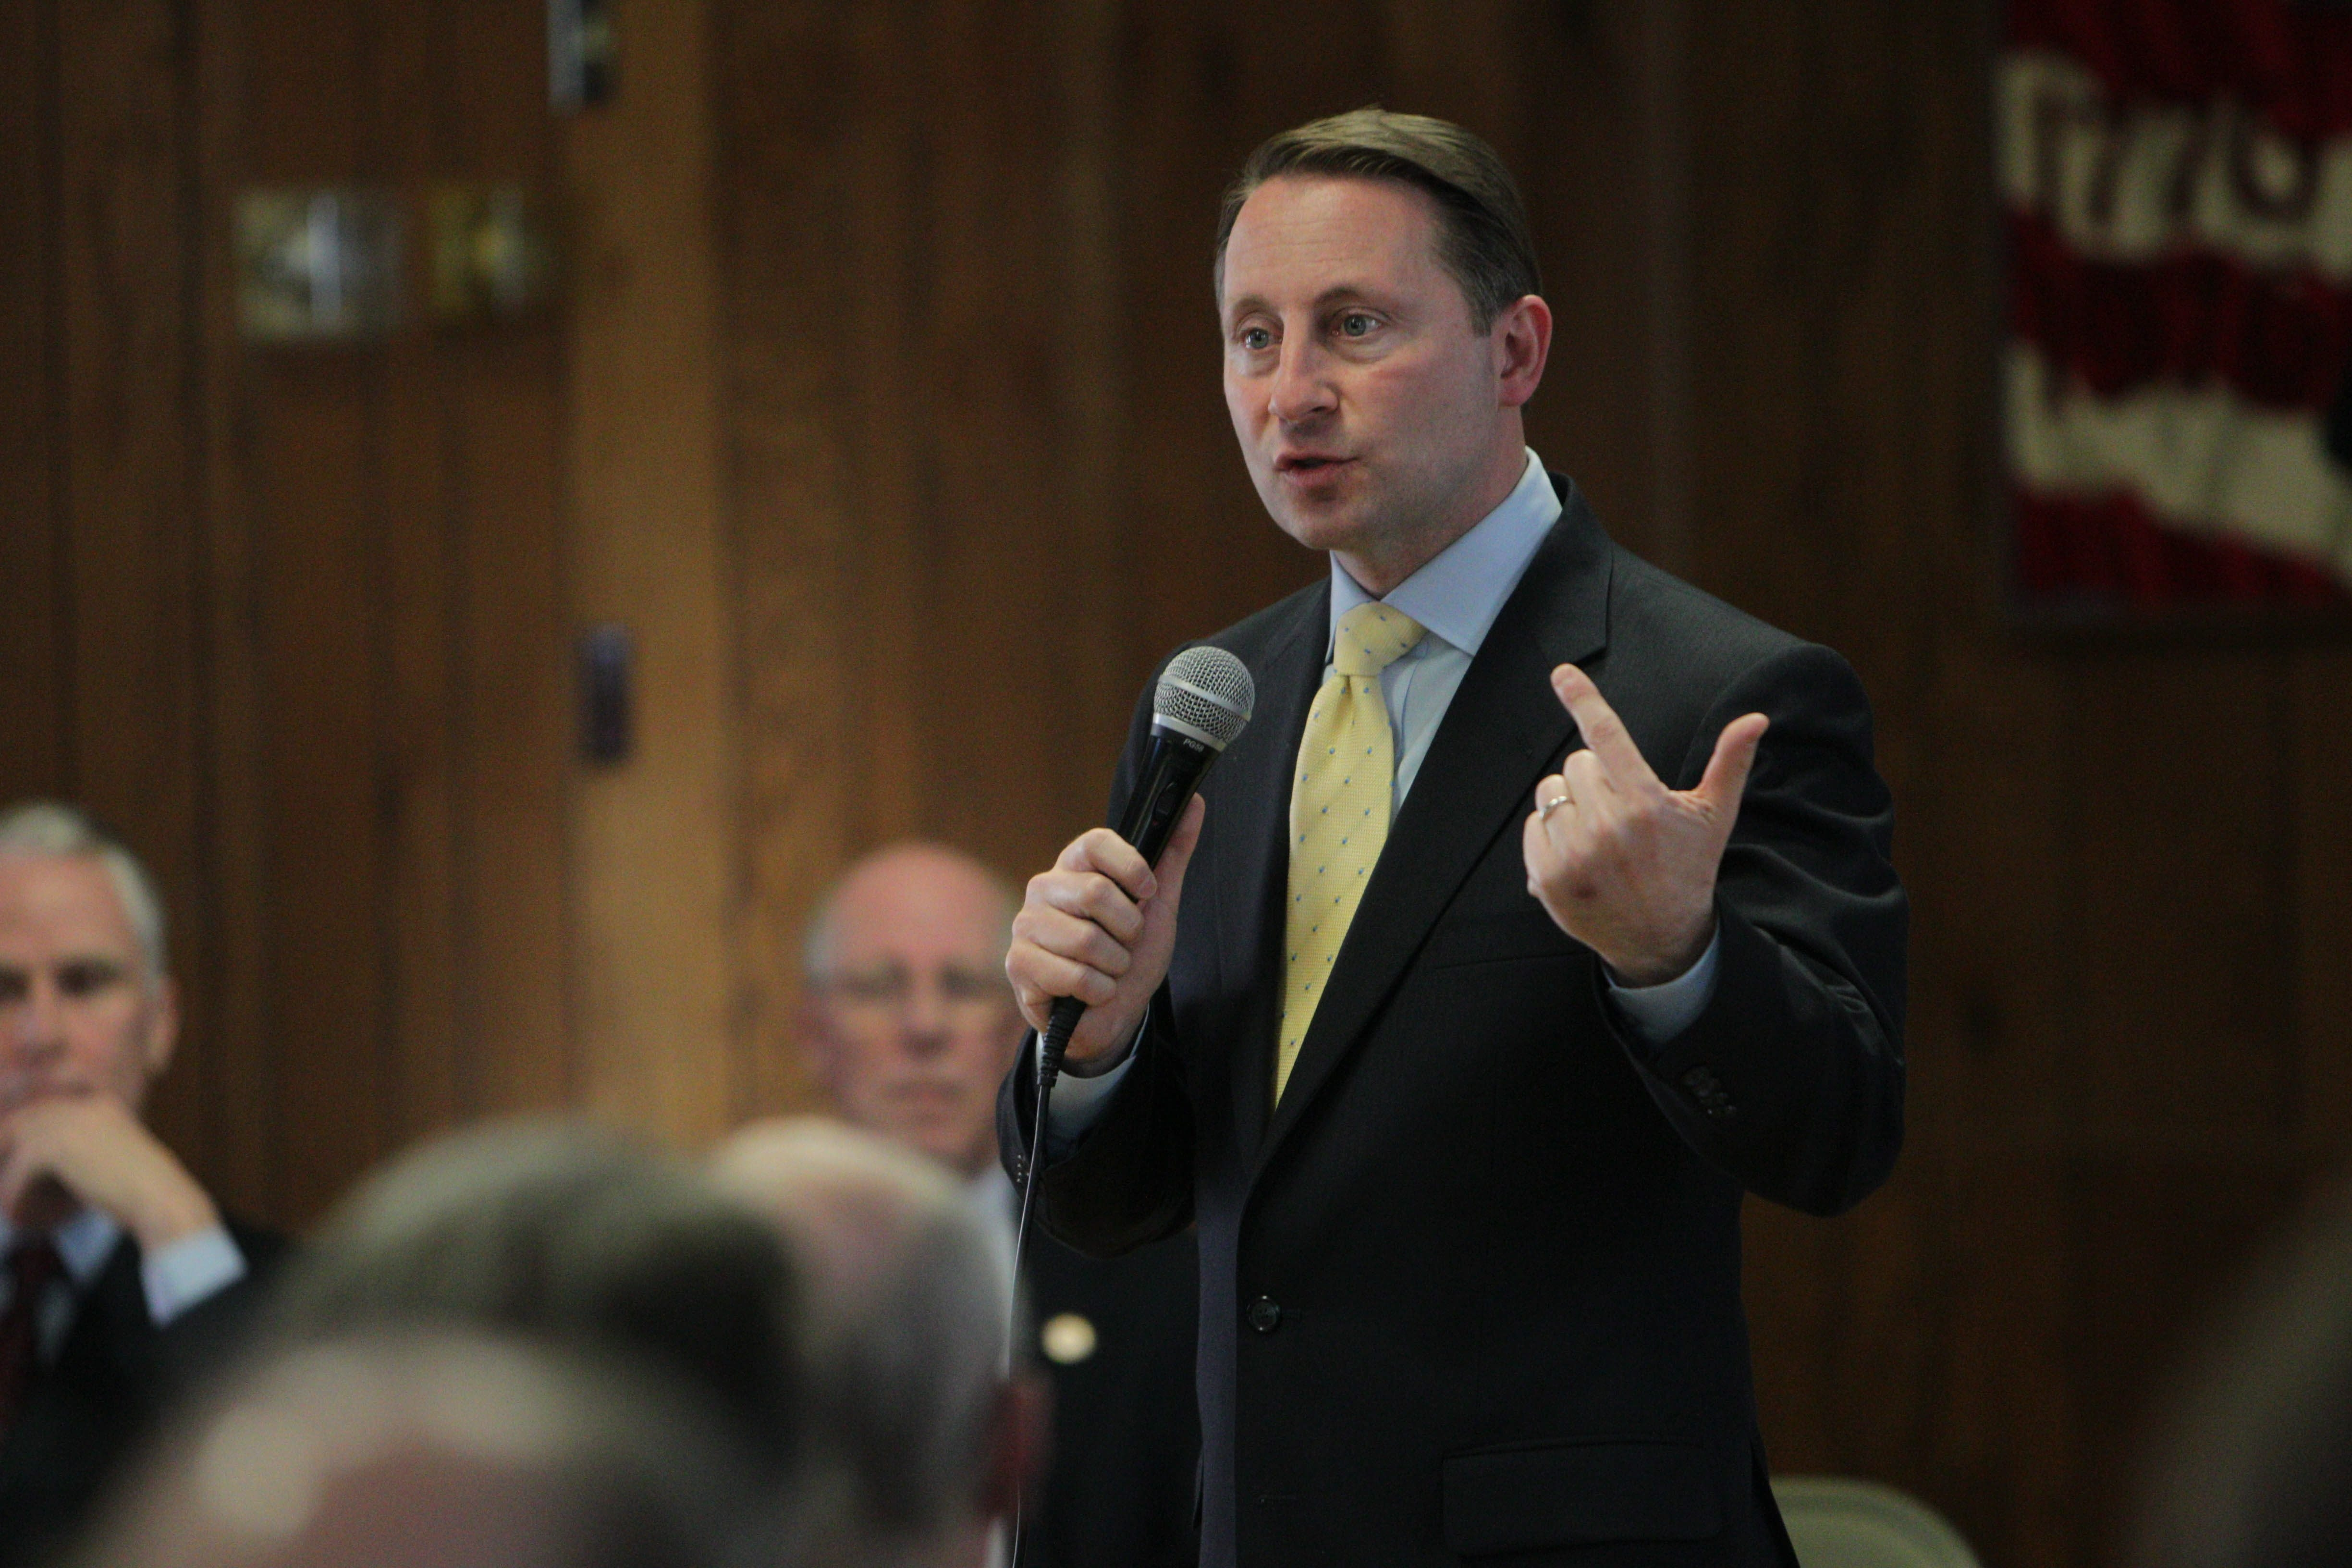 Republican gubernatorial candidate Rob Astorino speaks at the Erie County GOP Chairman's Roundtable at the Amherst Township Post 416 on Saturday.